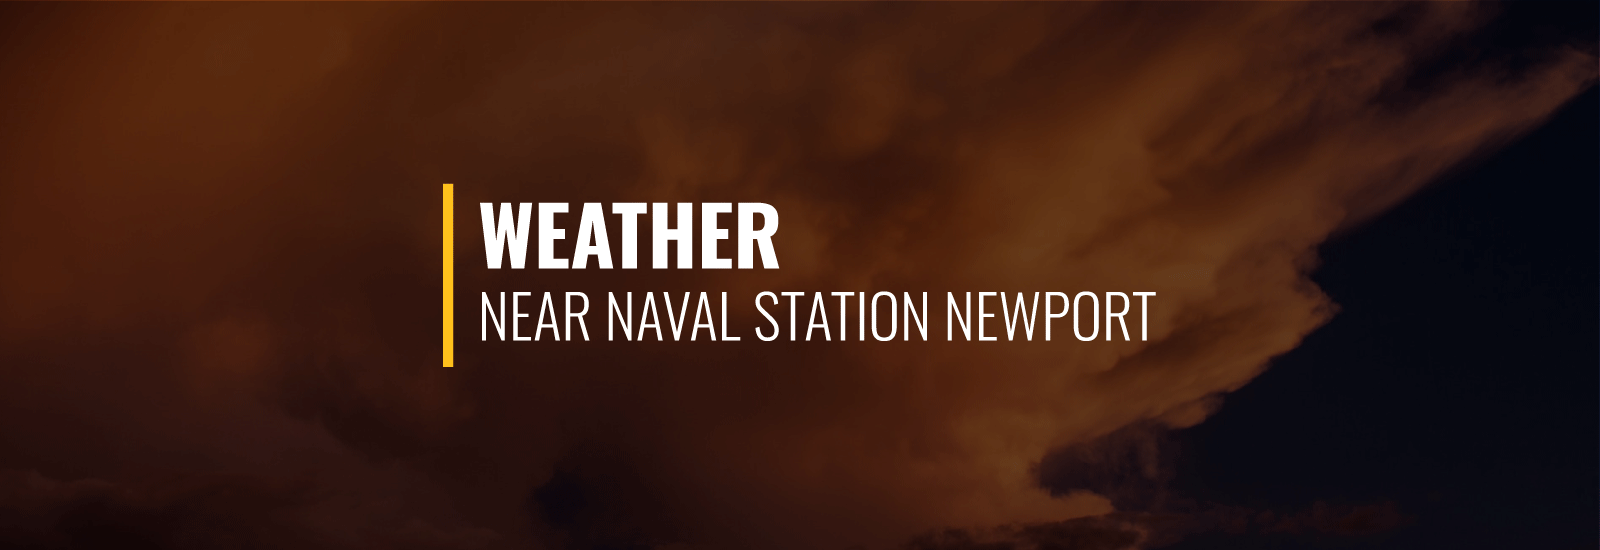 Naval Station Newport Weather